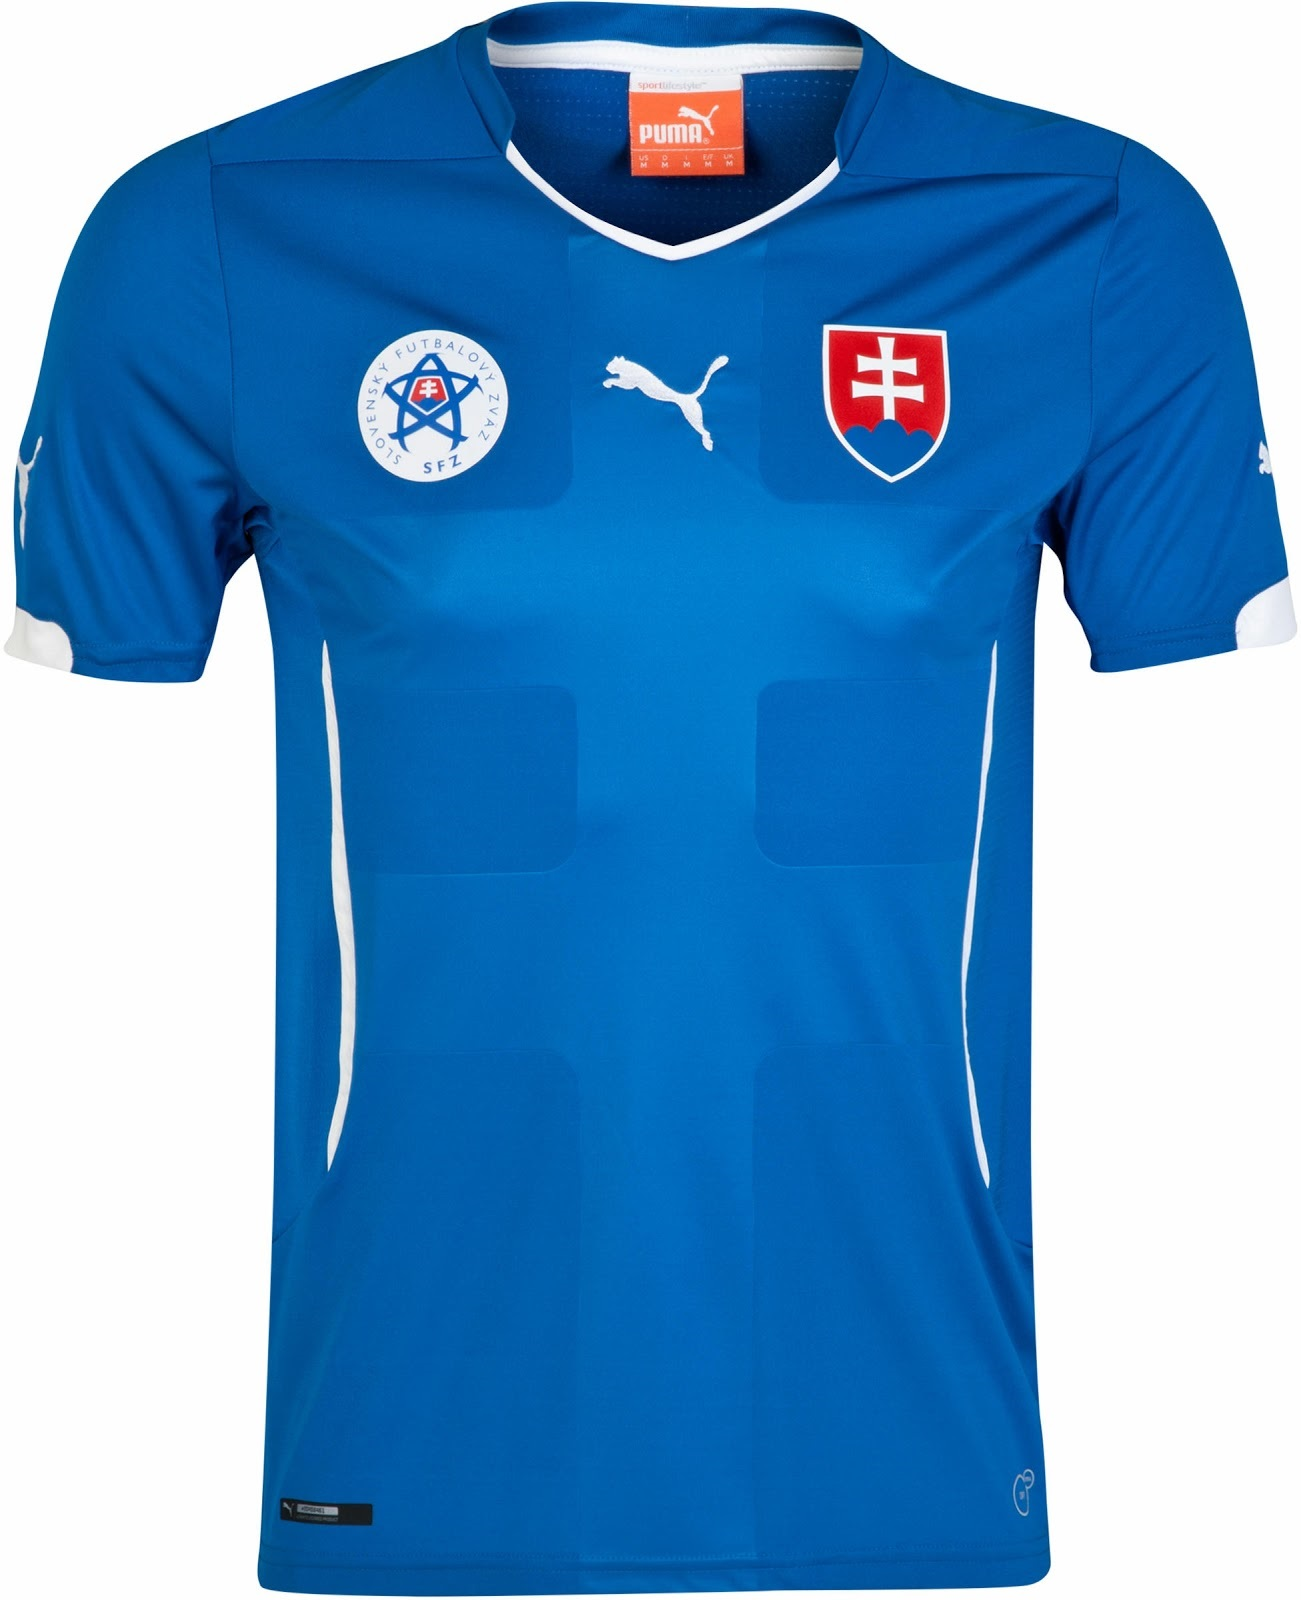 Slovakia-2014-PUMA-new-away-kit-1.jpg